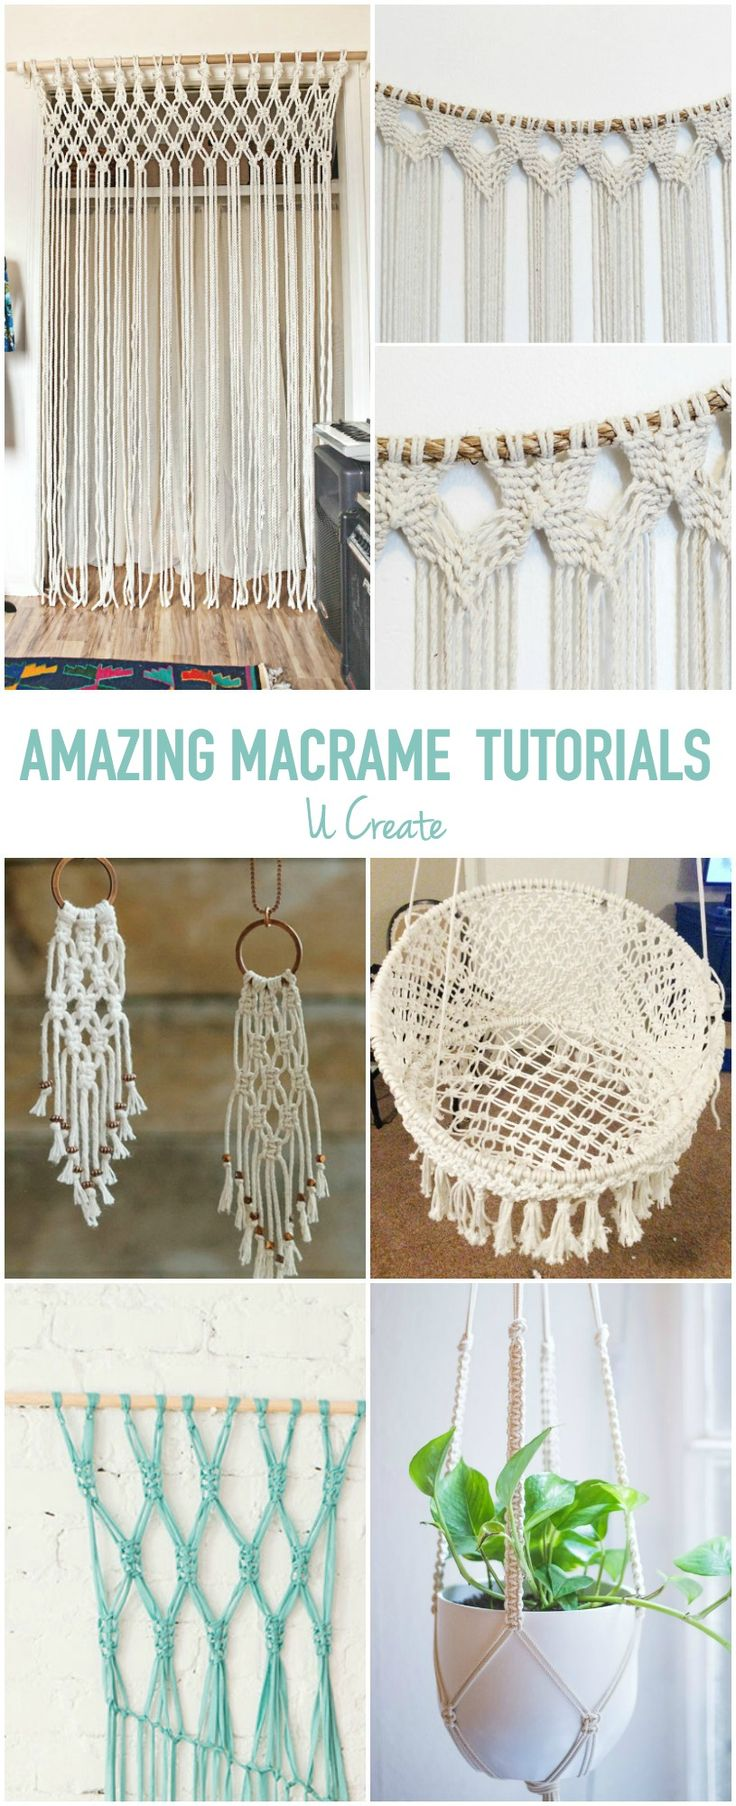 Amazing Macrame Tutorials                                                                                                                                                     More